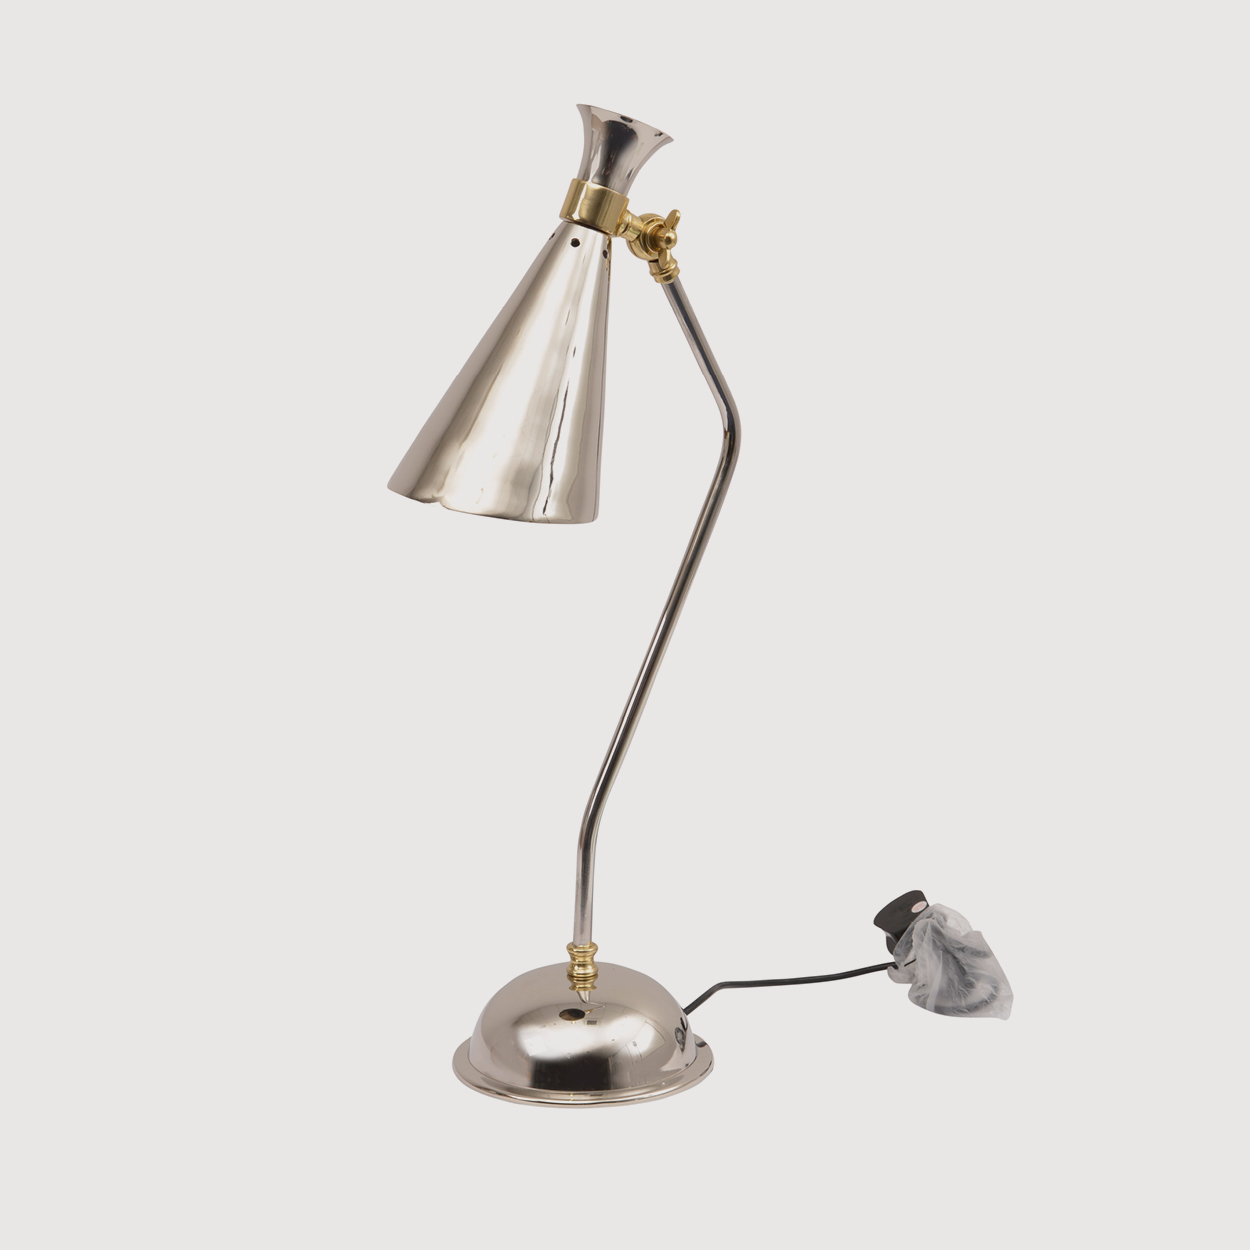 Enza Nickel and Brass Conical Desk Lamp gallery image